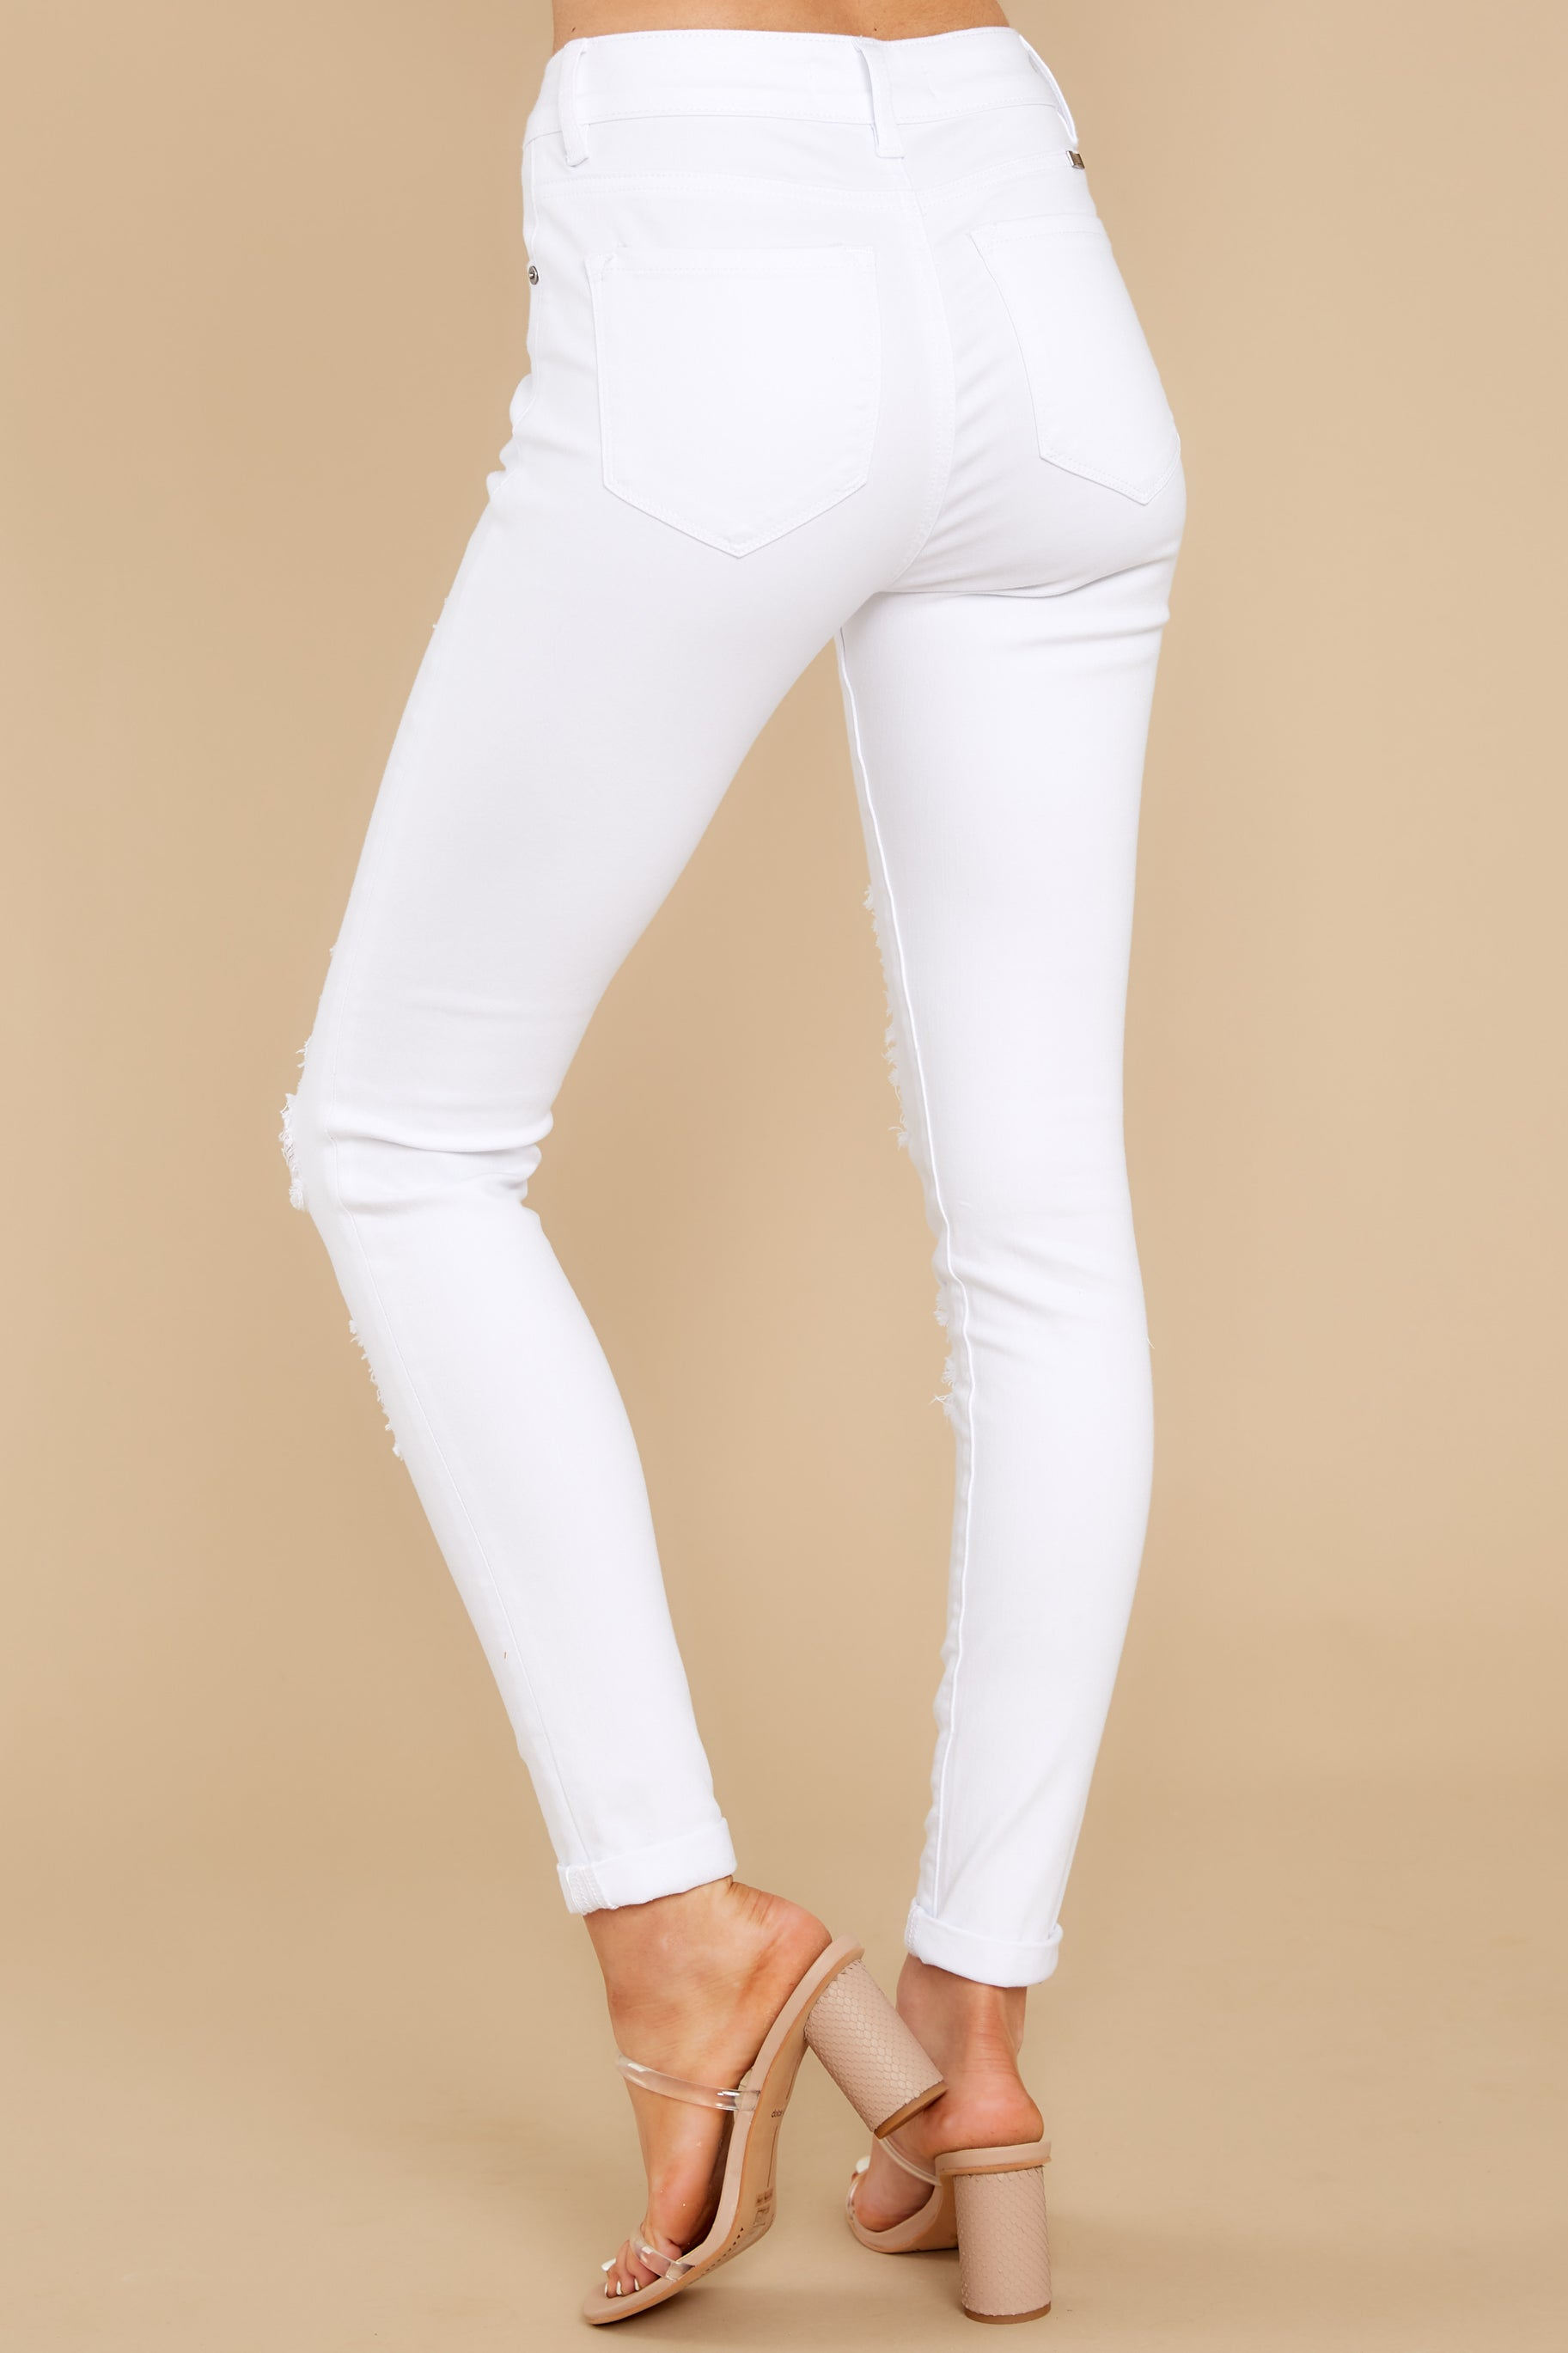 5 Told You White Distressed Skinny Jeans at reddress.com